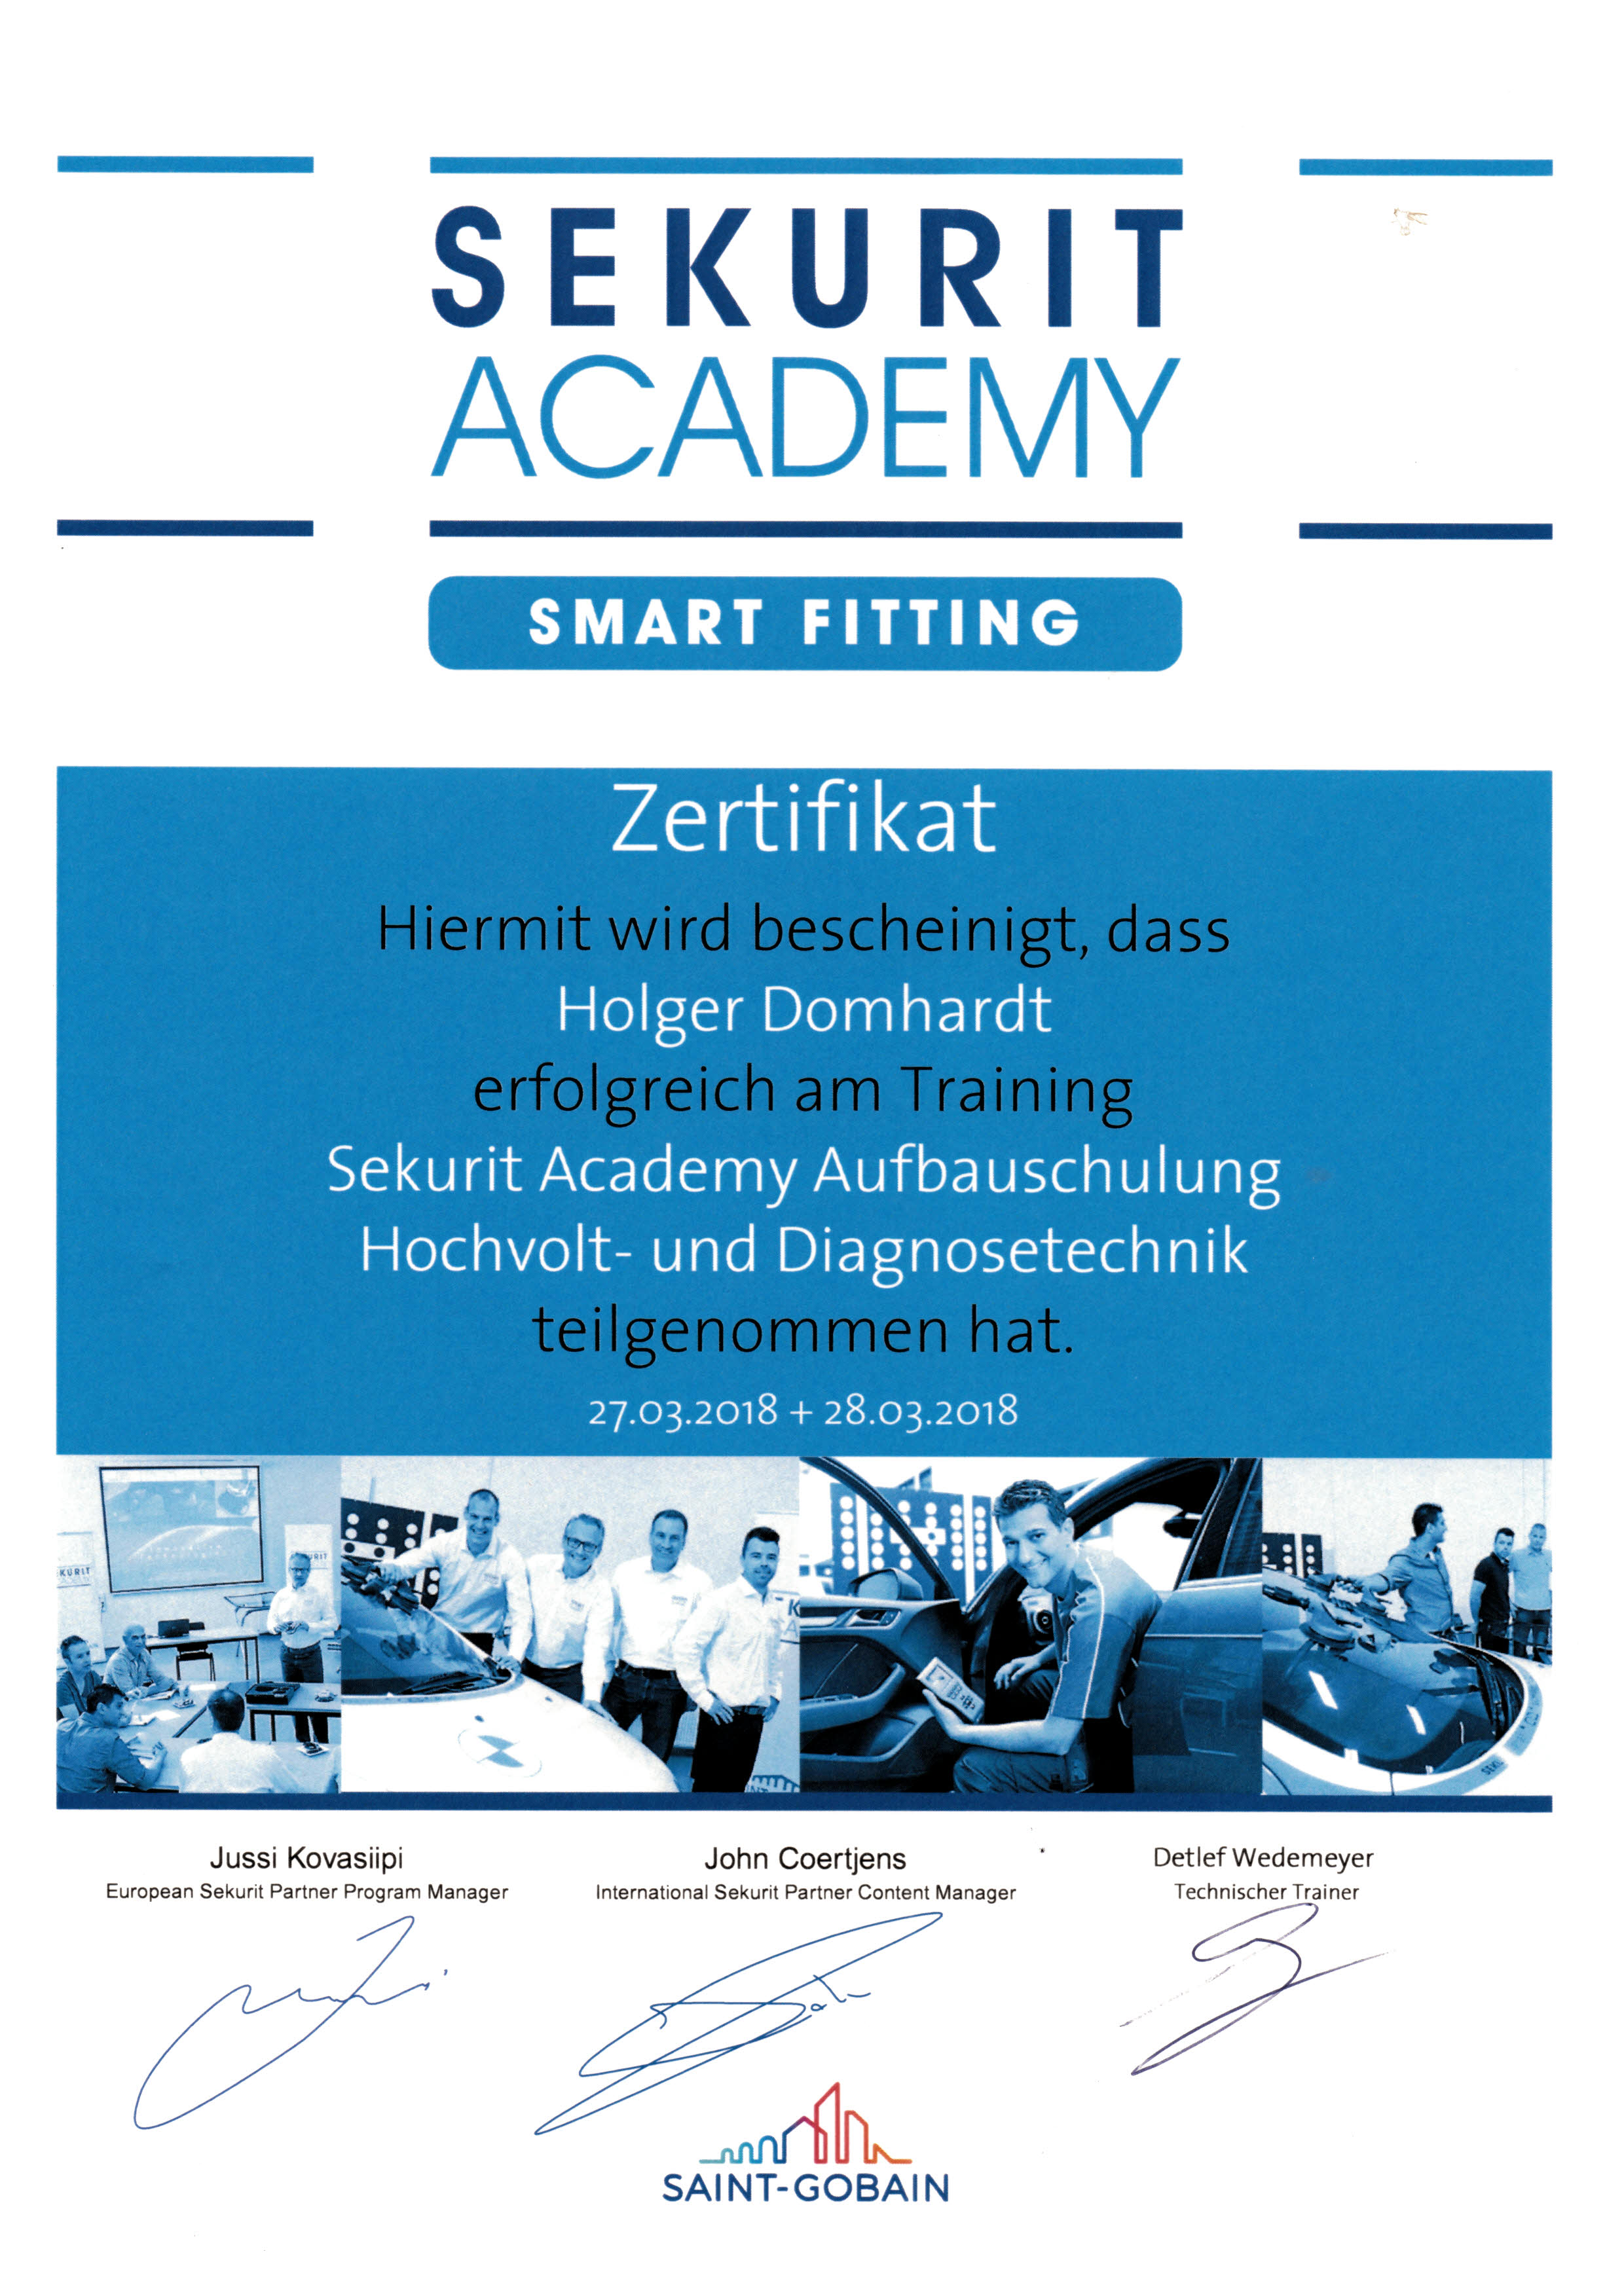 Zertifikat Sekurit Smart Fitting Hochvolt- und Diagnosetechnik